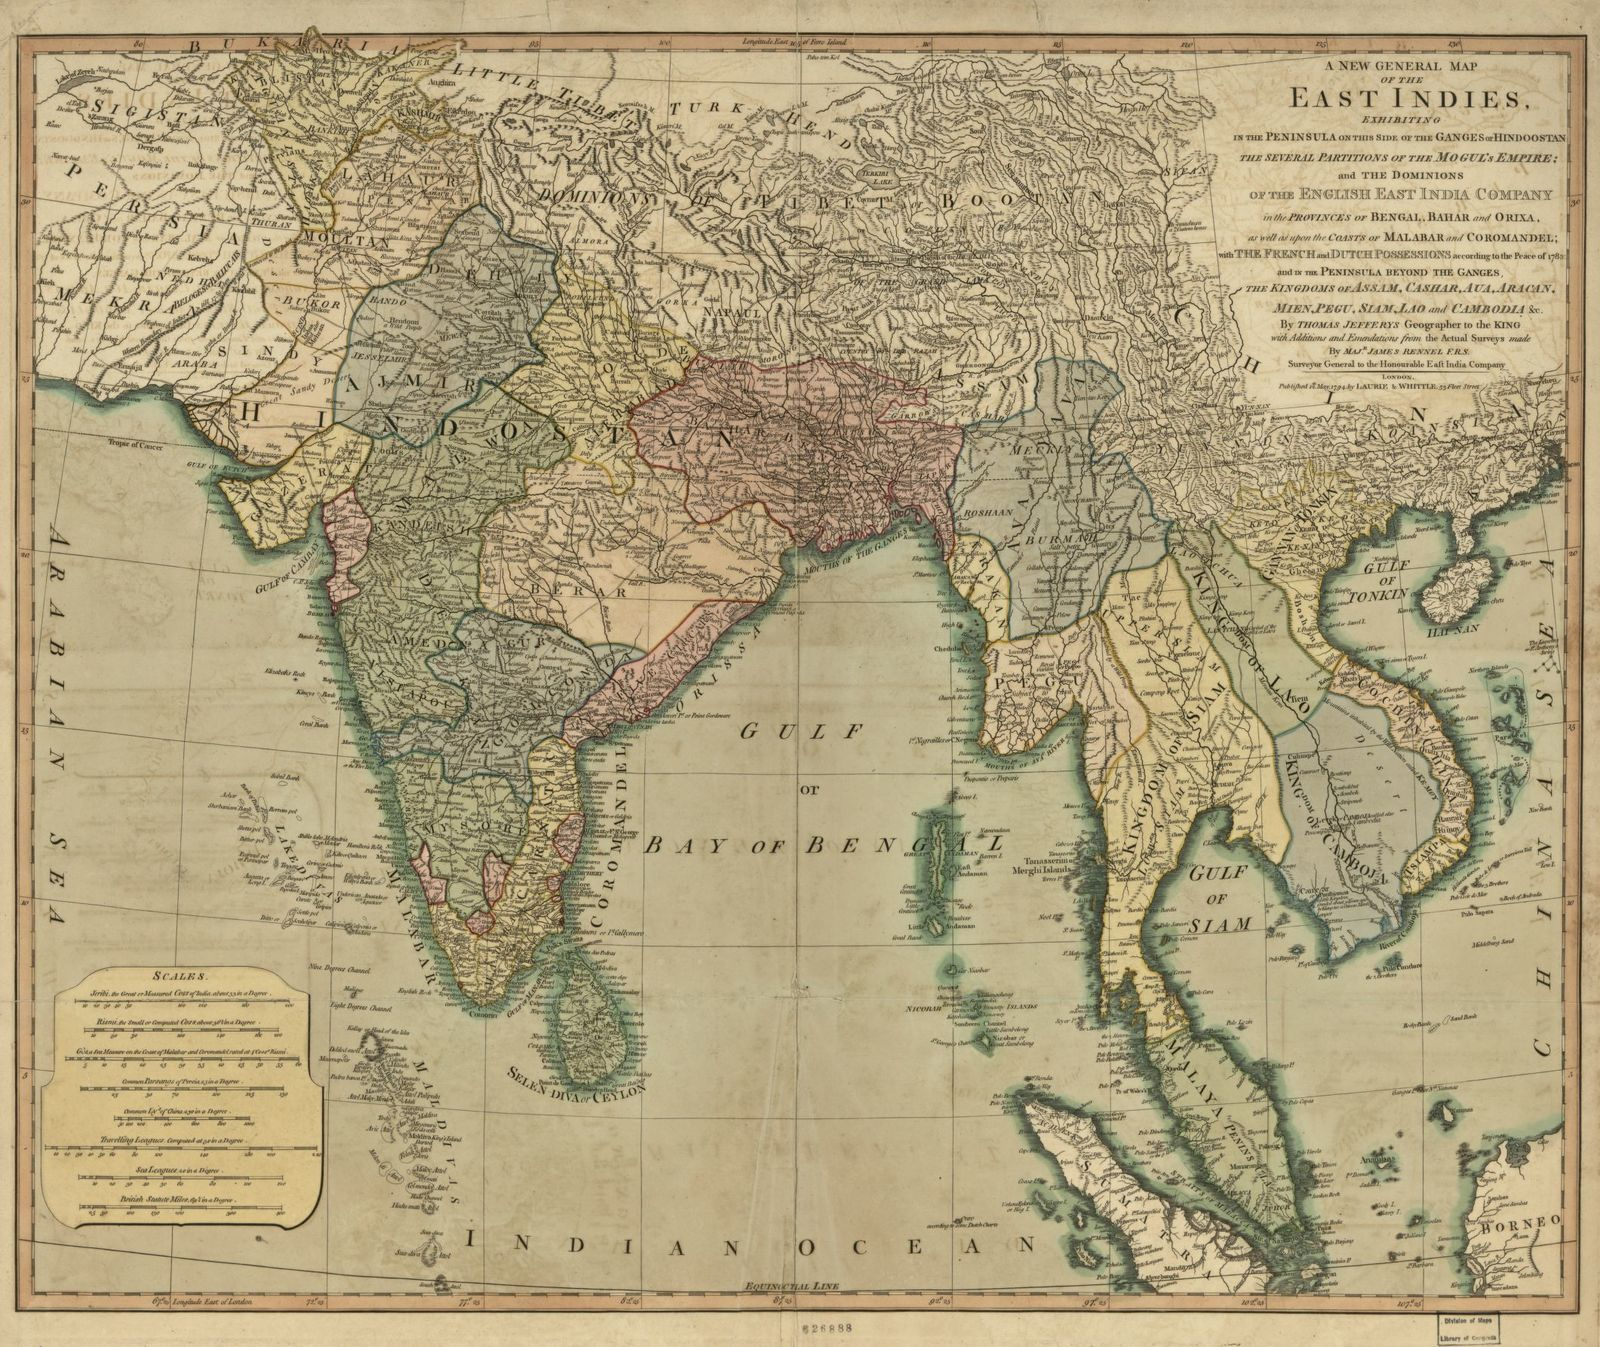 A new general map of the East Indies : exhibiting in the Peninsula on this side of the Ganges, or Hindoostan, the several partitions of the Mogul's Empire ; and the dominions of the English East India Company in the provinces of Bengal, Bahar, Orixa, as well as upon the coasts of Malabar and Coromandel ; with the French and Dutch possessions according to the peace of 1783 : and in the peninsula beyond the Ganges, the kingdoms of Assam, Cashar, Aua, Aracan, Mien, Pegu, Siam, Lao and Cambodia, &c. /